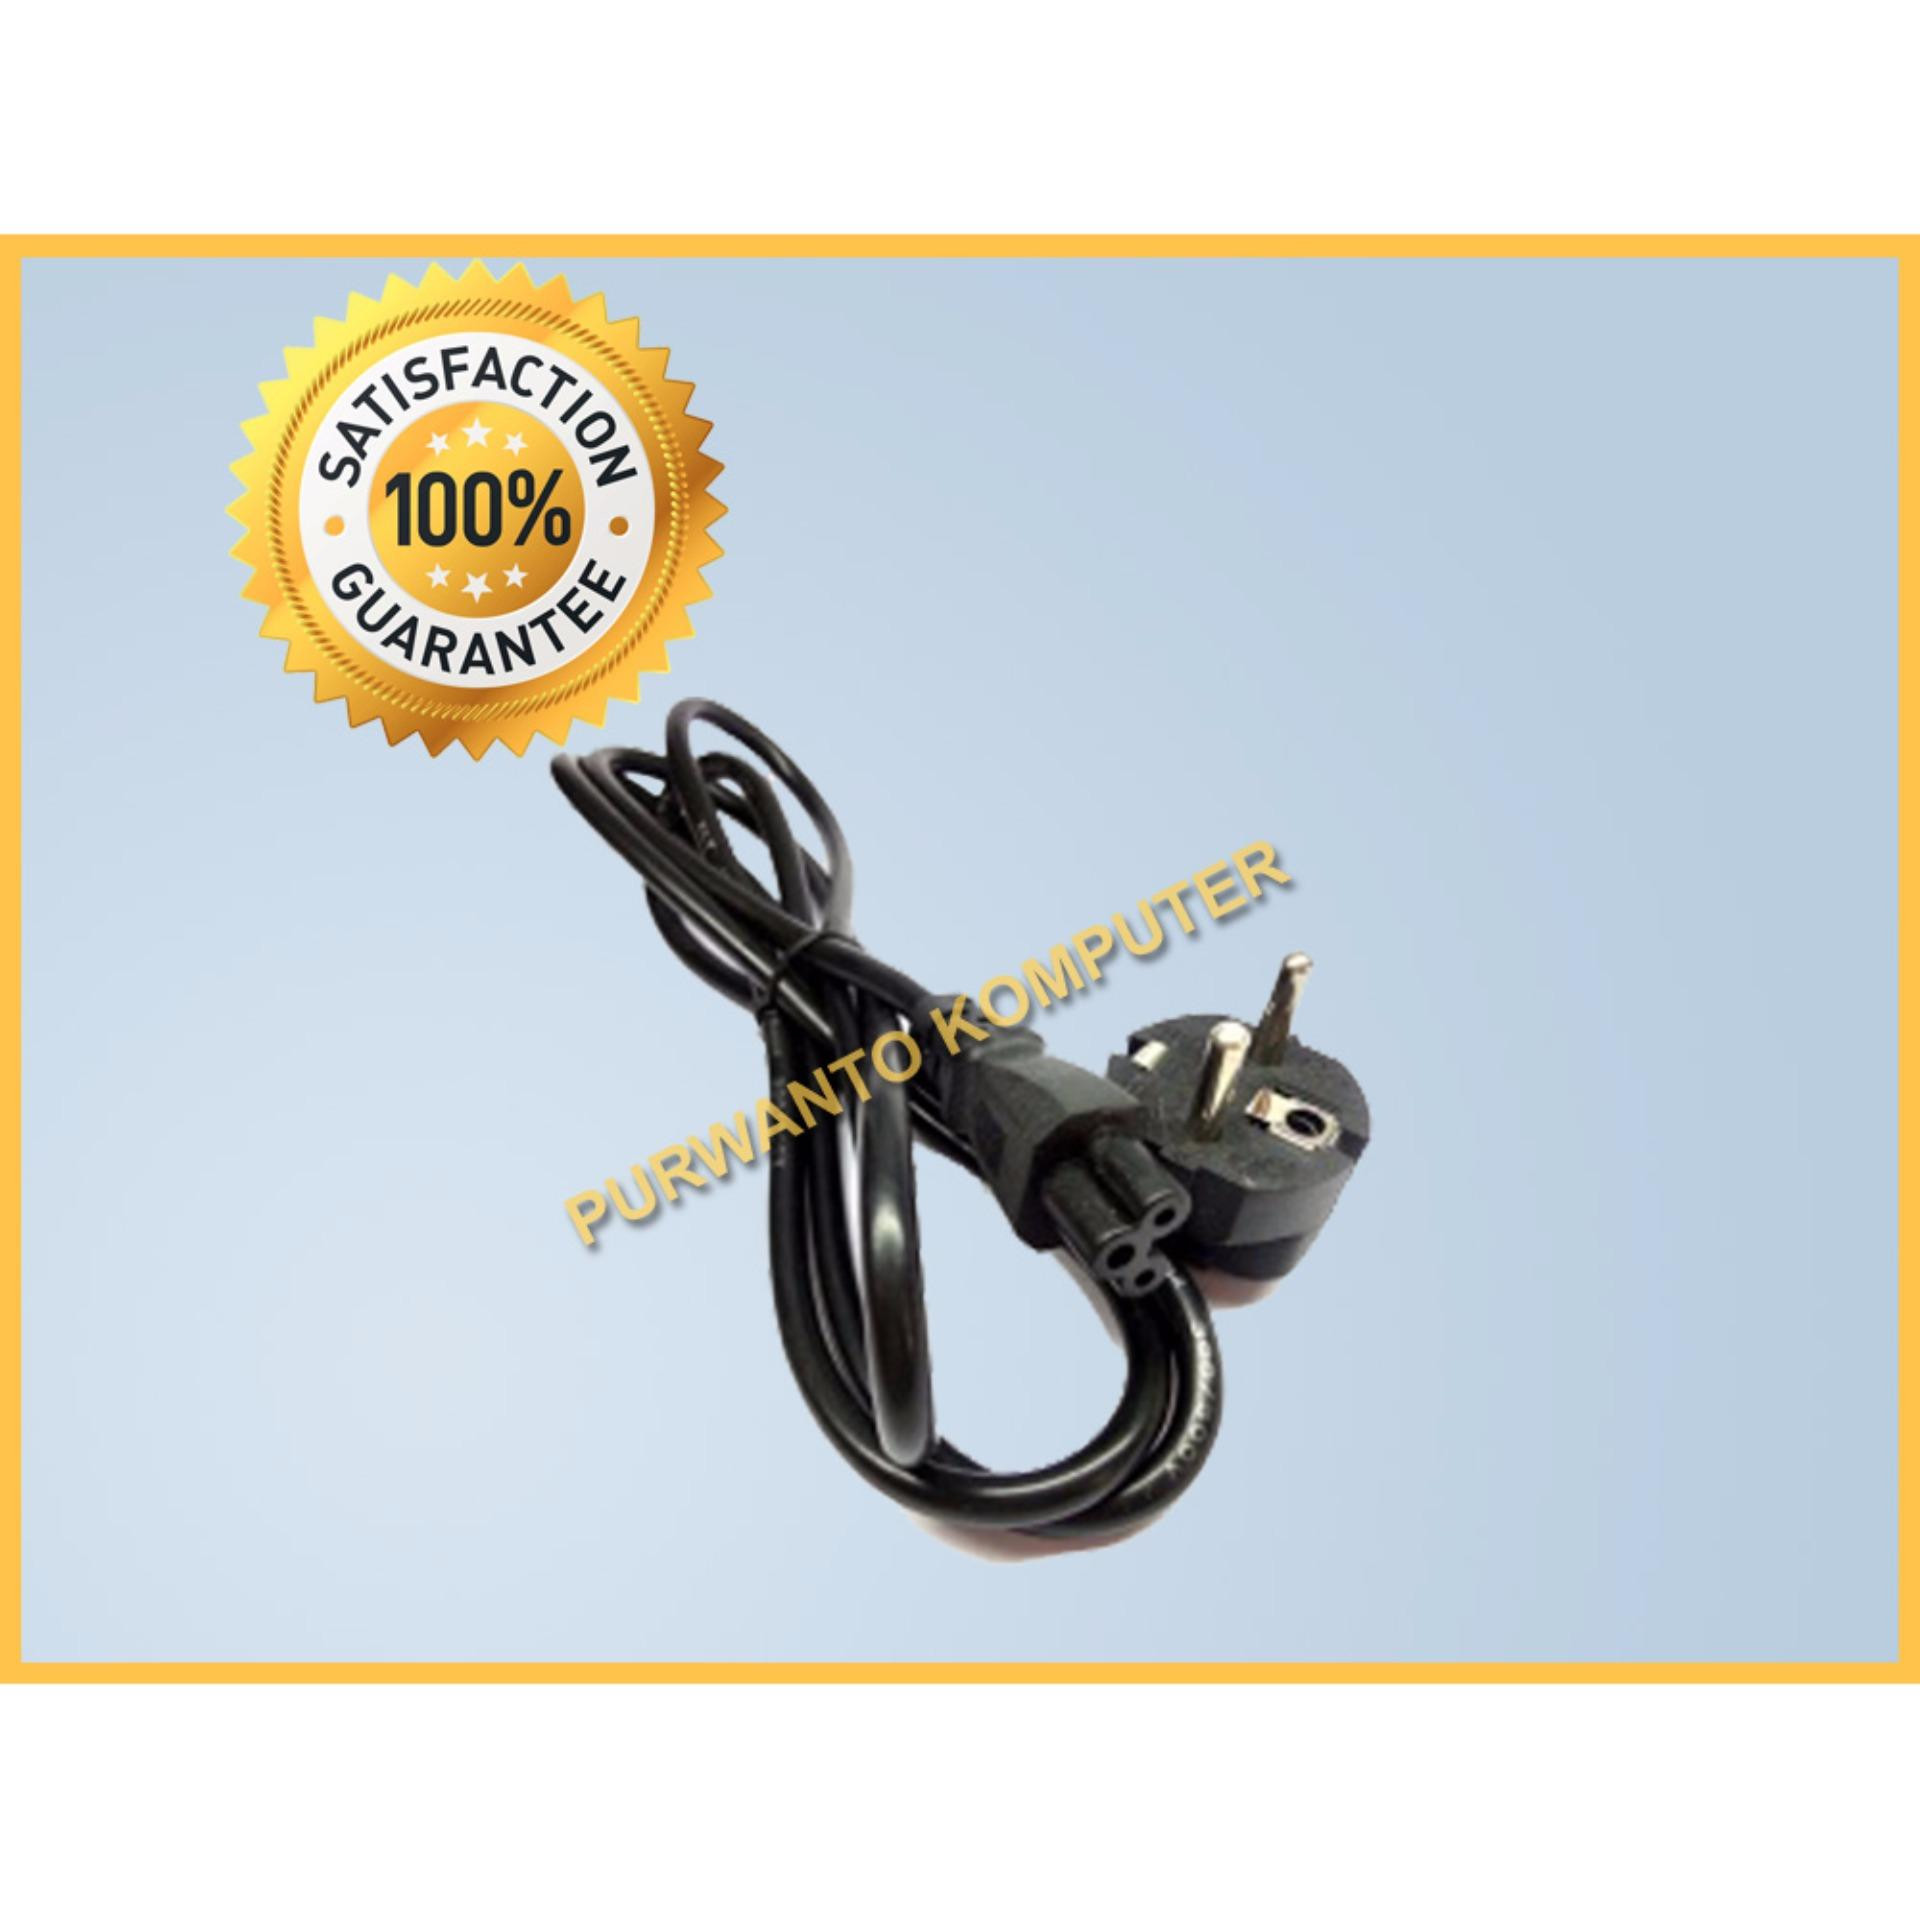 Adaptor Charger Laptop Toshiba Satellite C805 C840 C850 L800 L840 Keyboard C800 C800d M800 L830 Series Hitam Original